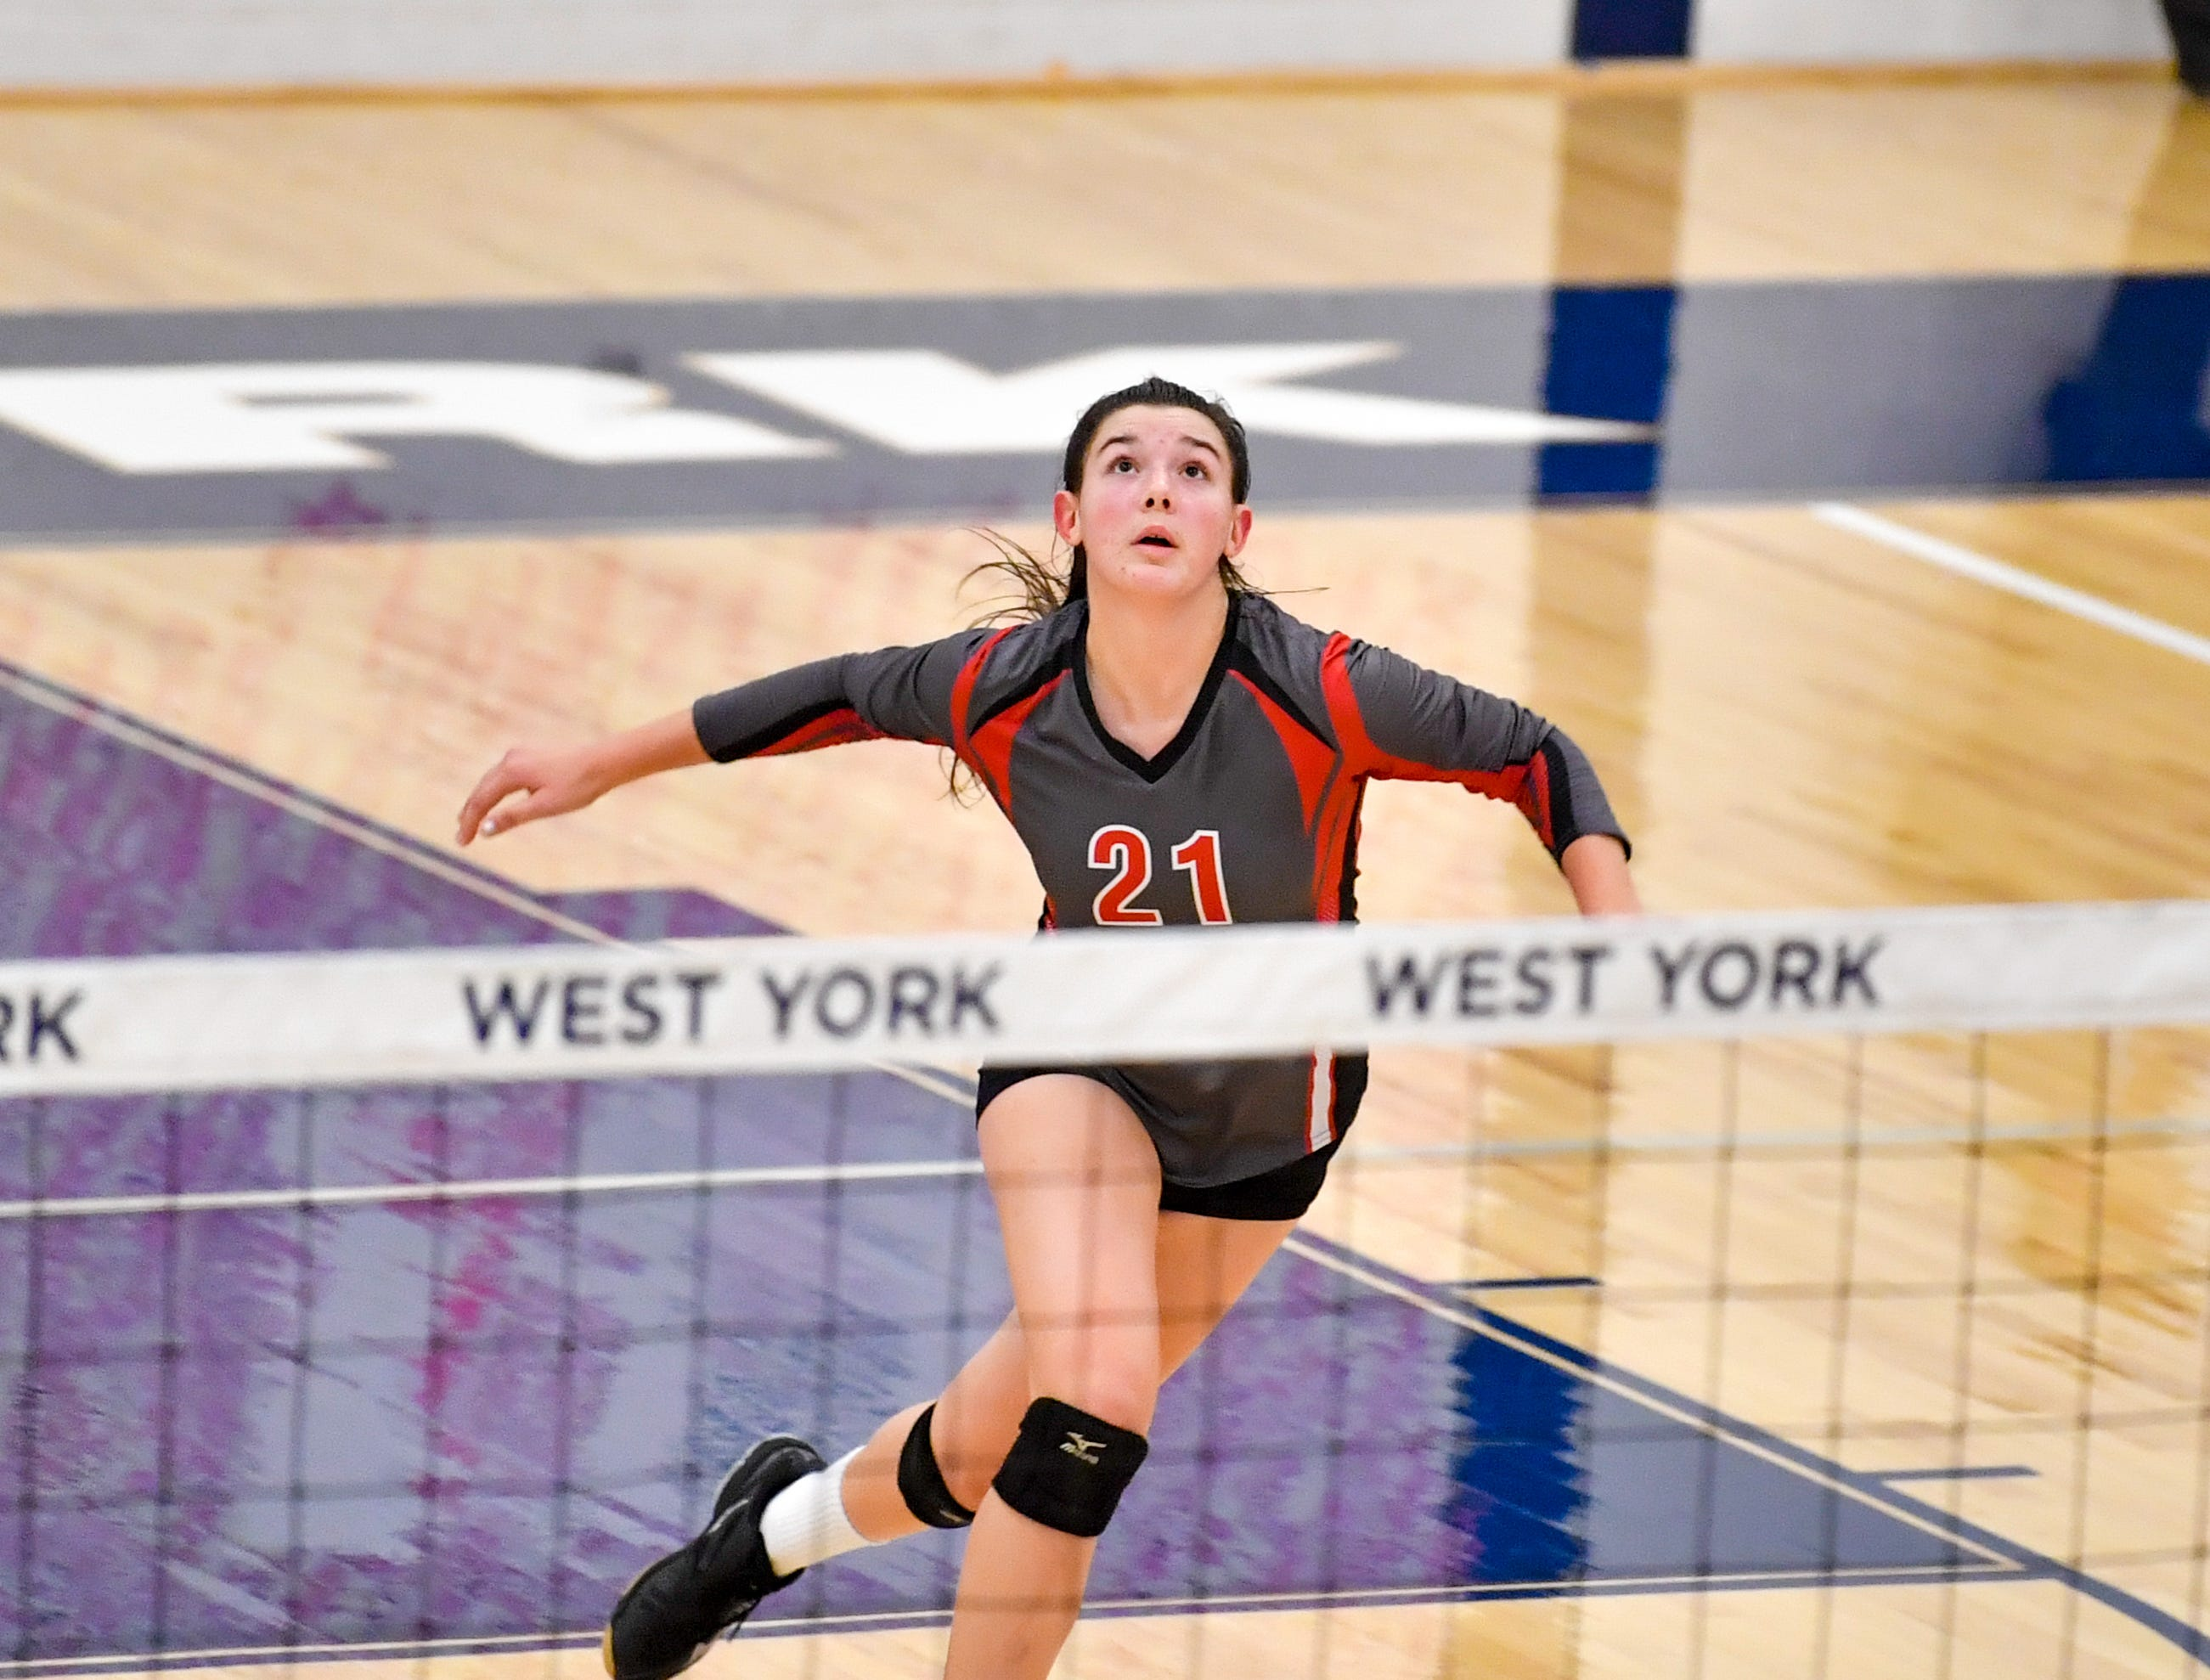 Emma Davis (21) tracks the ball during the District 3 Class 3A girls' volleyball quarterfinals between Dover and York Suburban at West York High School, October 30, 2018. The Eagles defeated the Trojans 3-2.